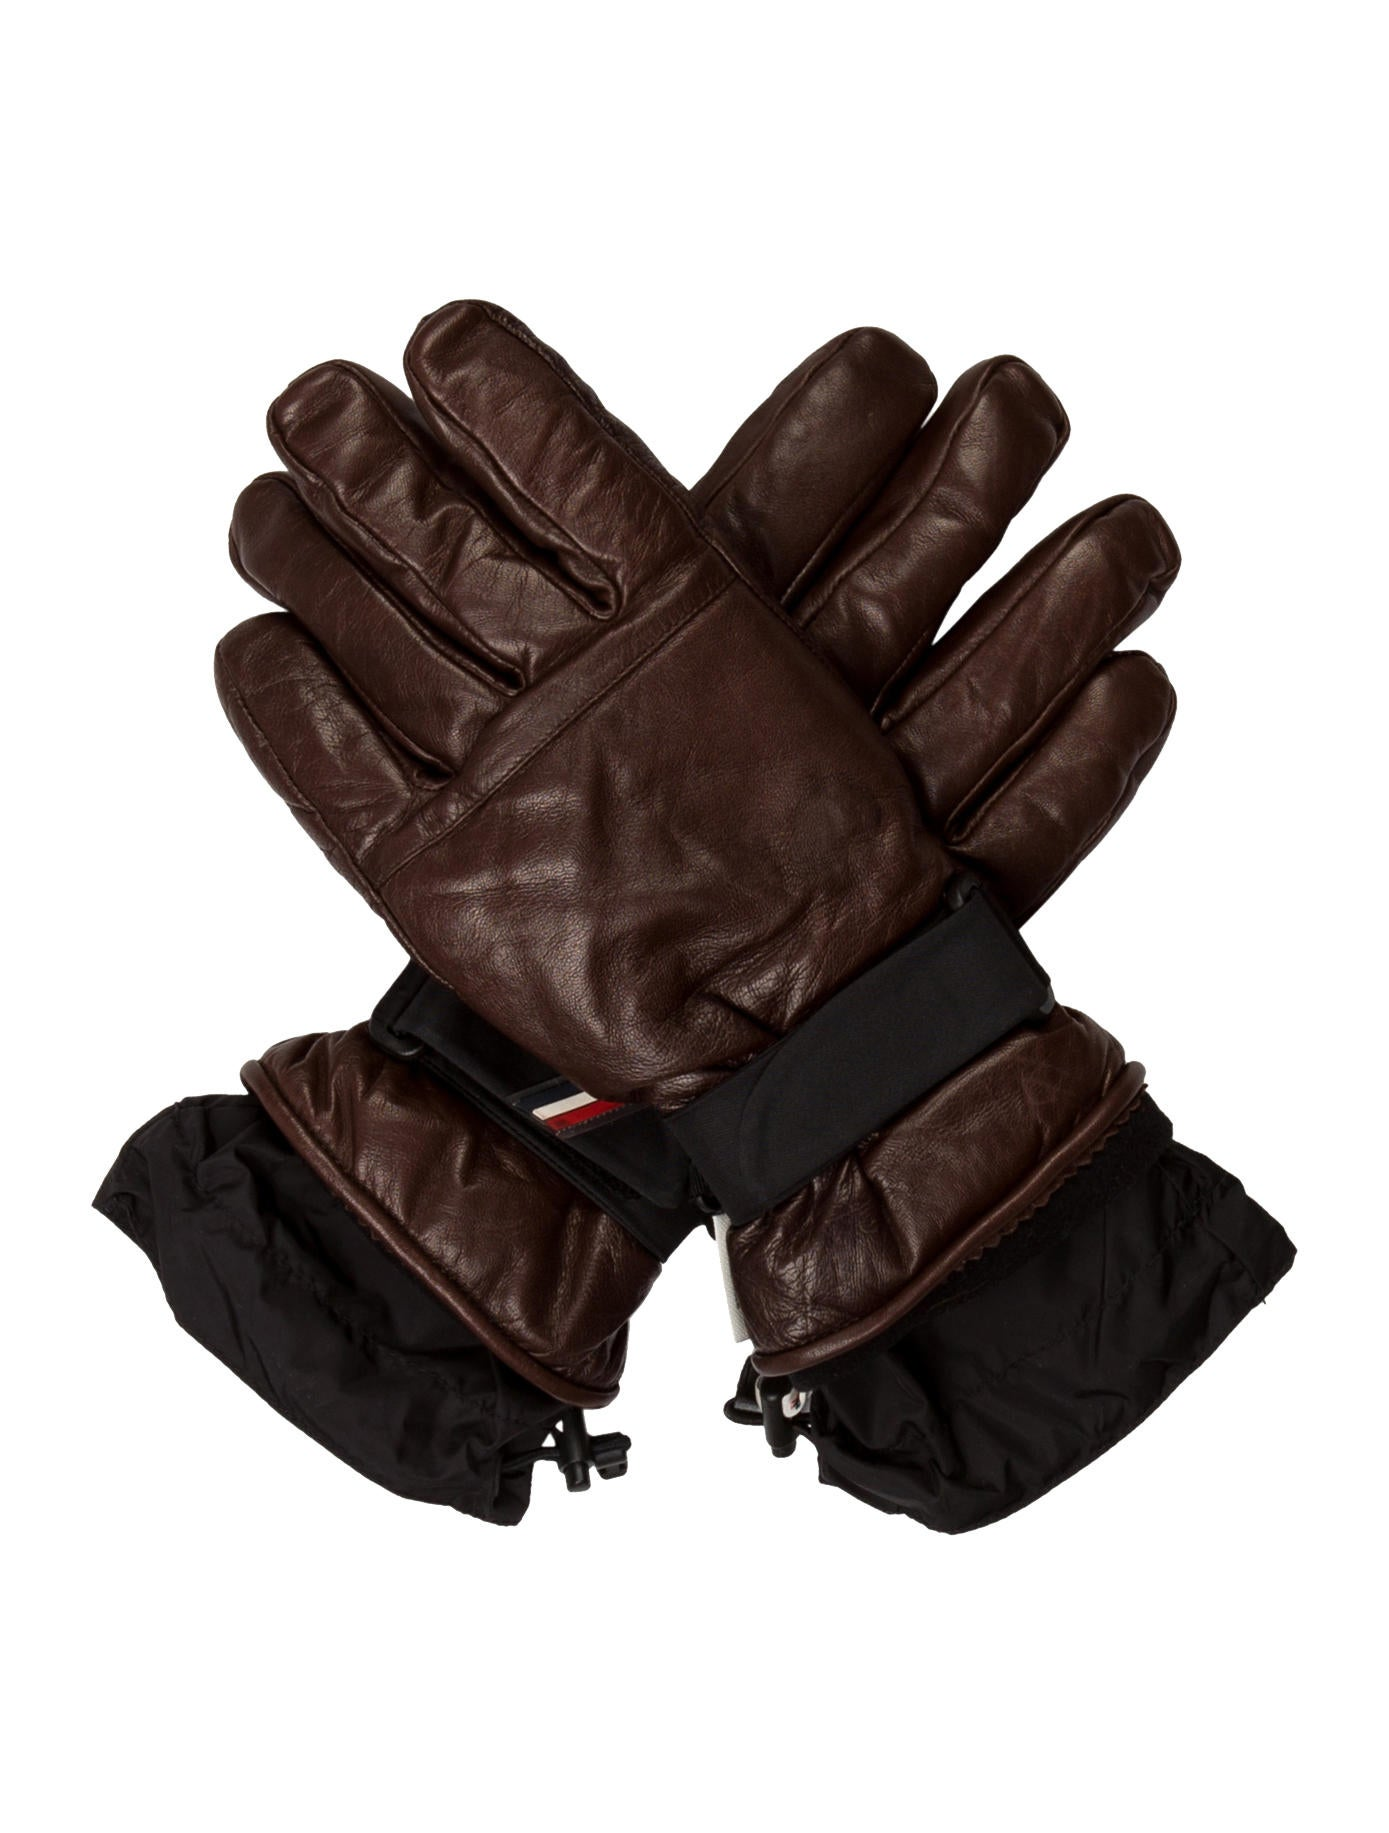 67e24e273 Moncler Grenoble Lambskin Leather Gloves - Accessories - MGREN20207 ...